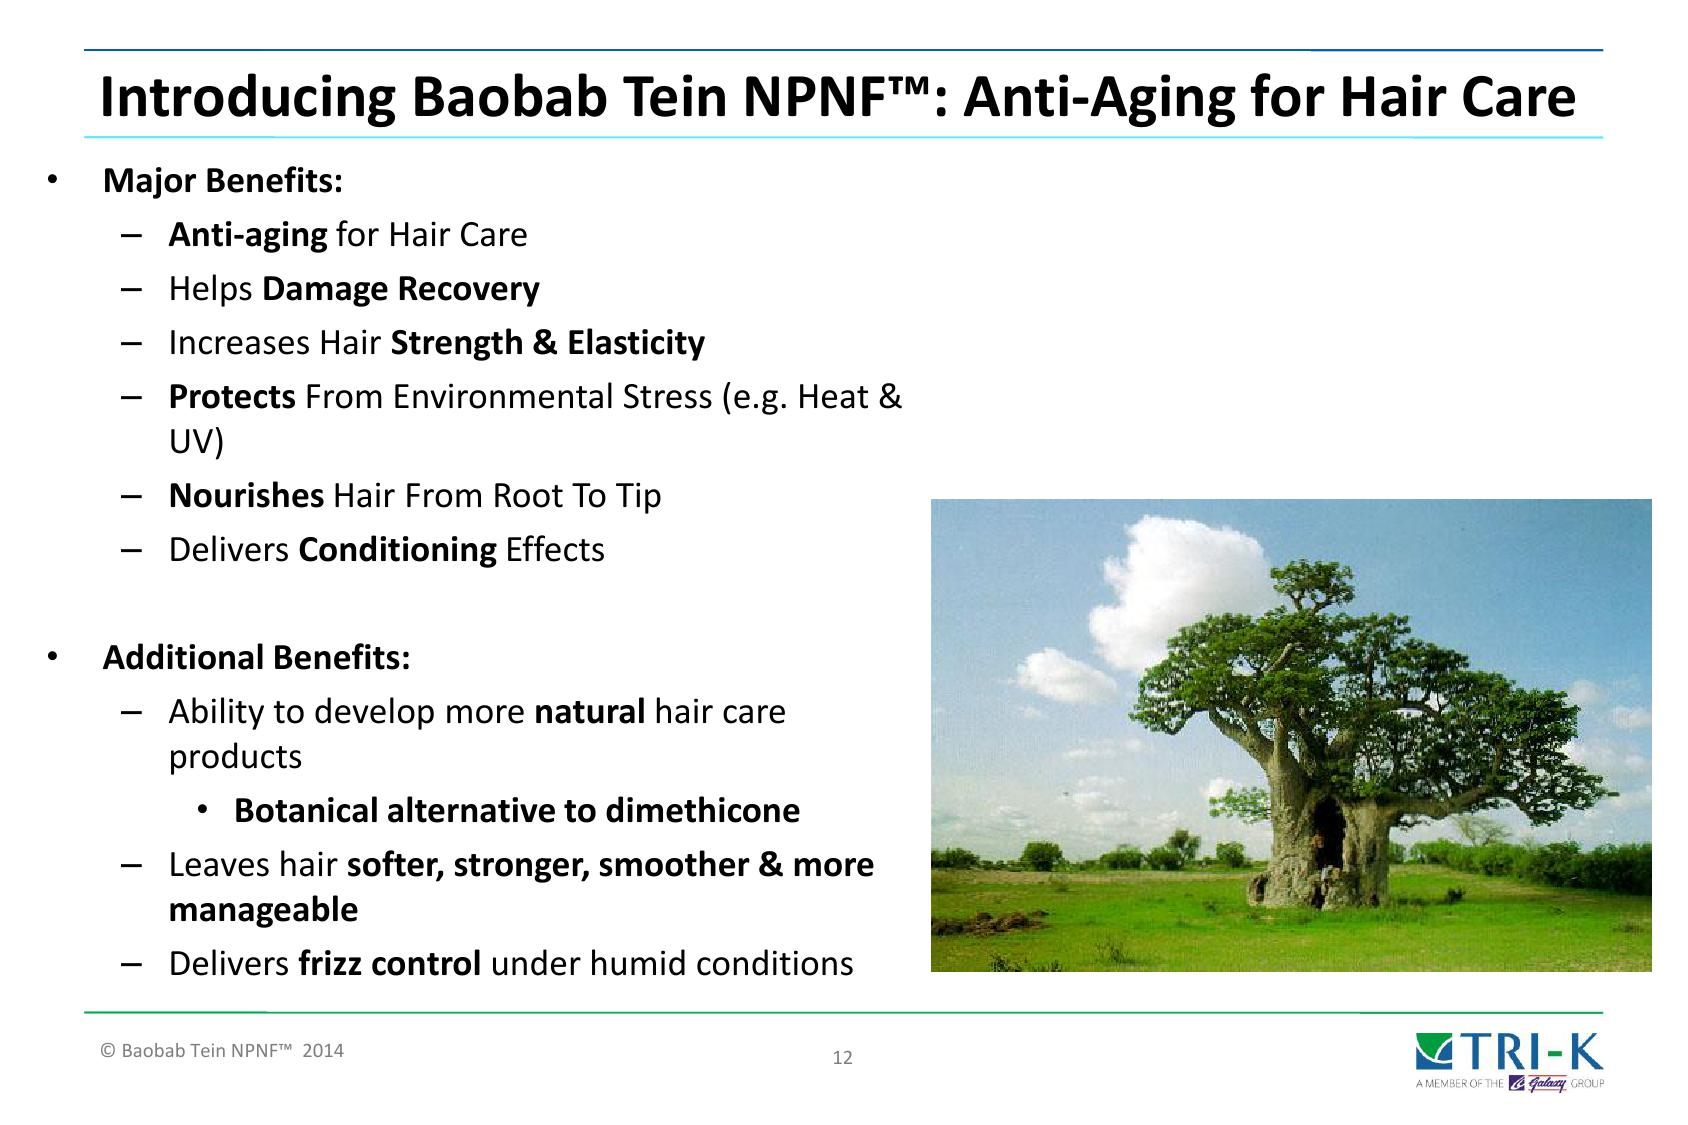 final-baobab-tein-npnf-global-presentation-4.2014-000012.jpg